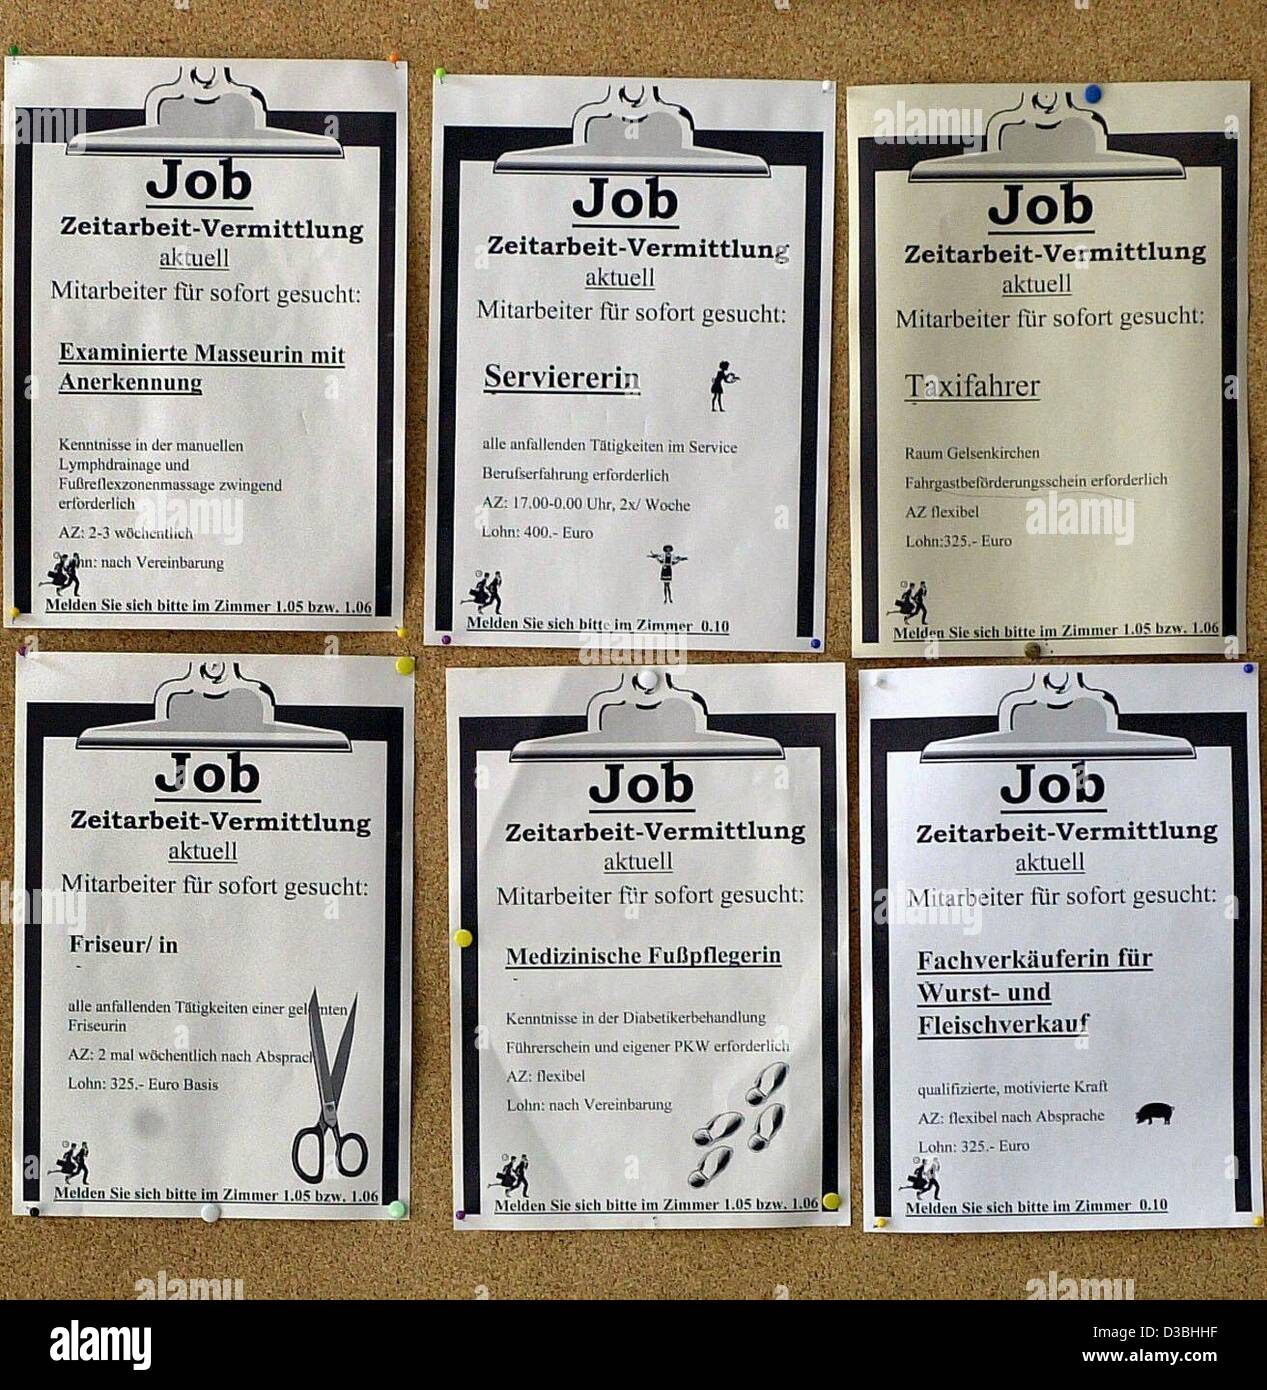 dpa a notice board for vacancies advertises temping jobs in the dpa a notice board for vacancies advertises temping jobs in the local branch of the federal employment office gelsenkirchen 2 2003